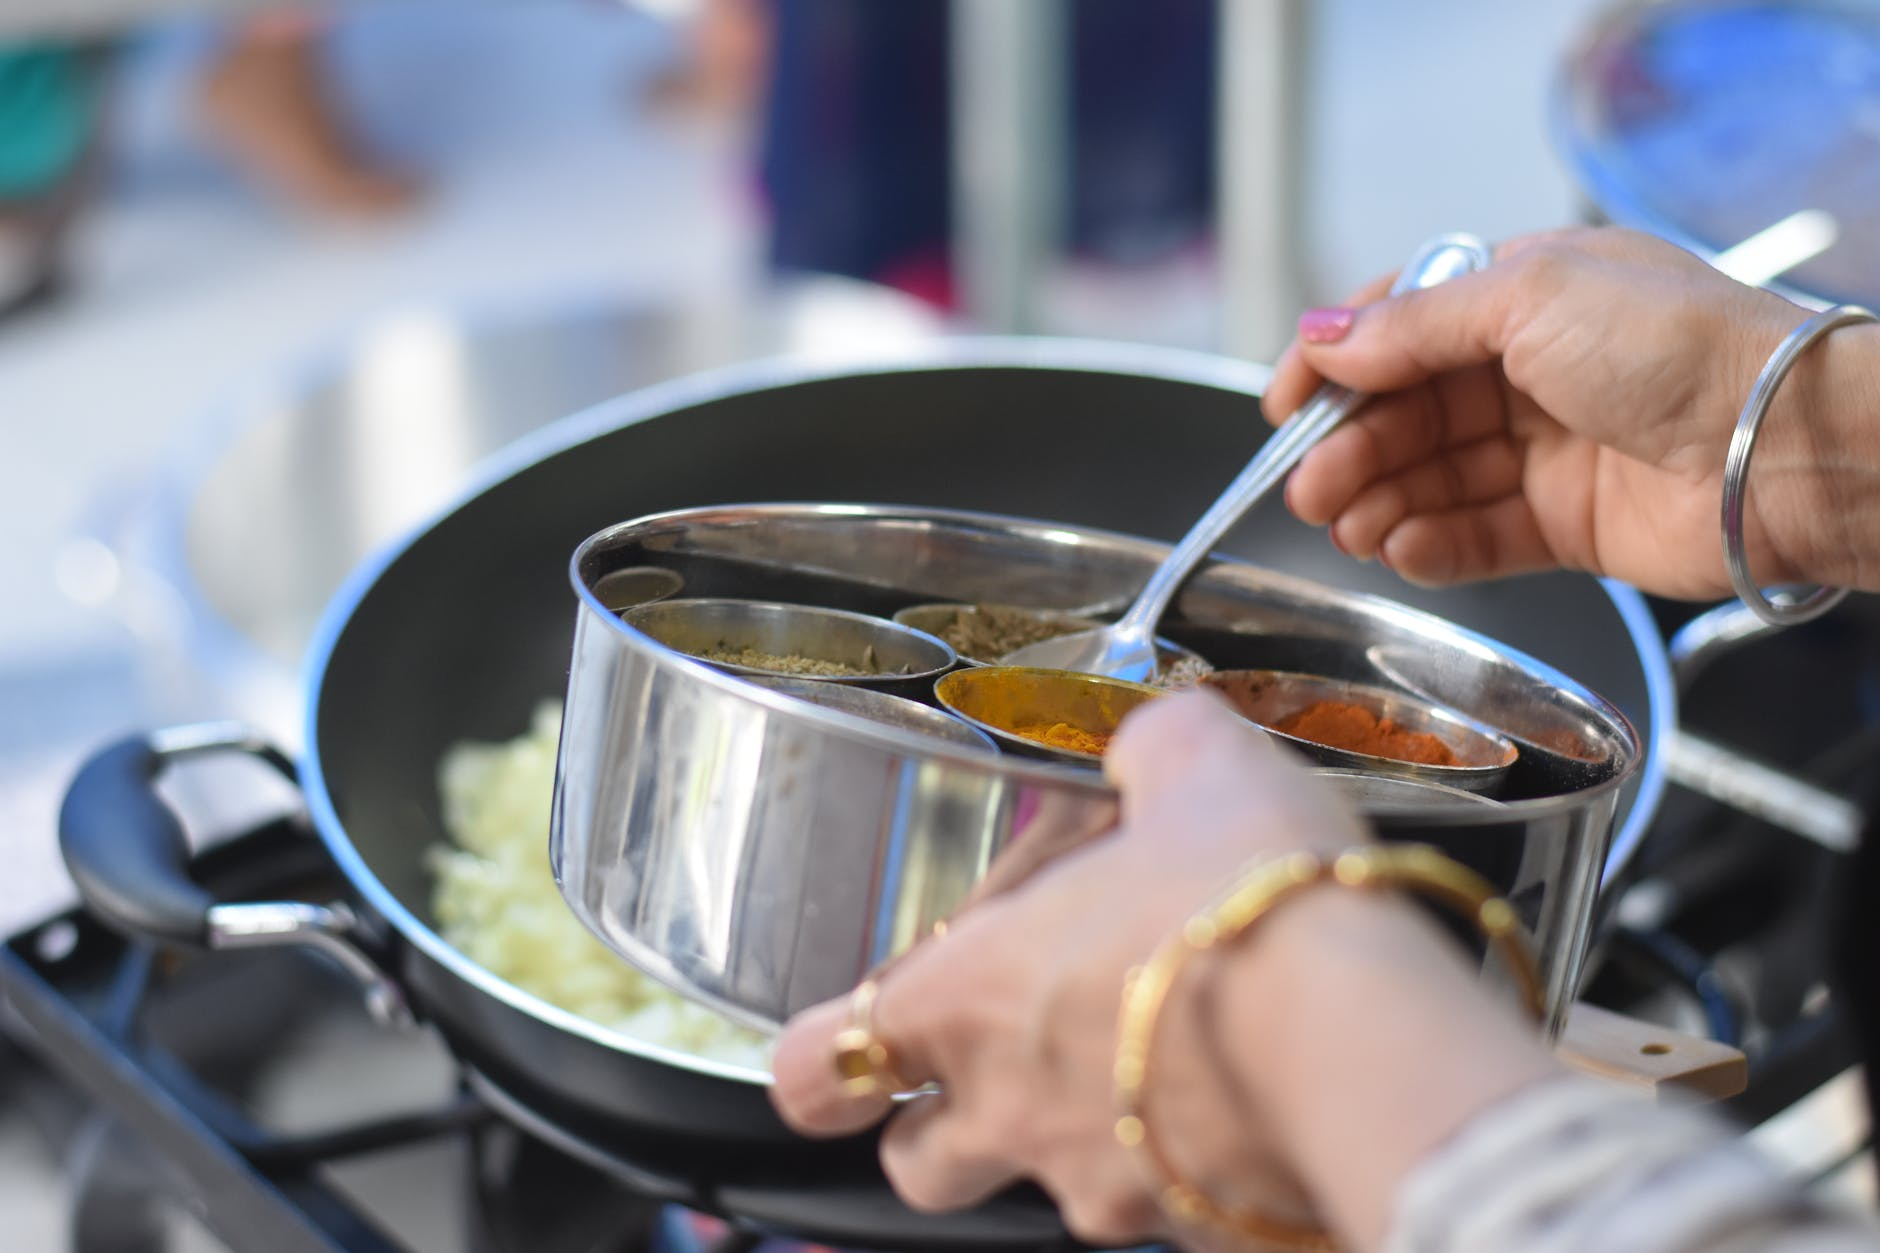 Stainless Steel Vs. Nonstick Cookware – The Difference